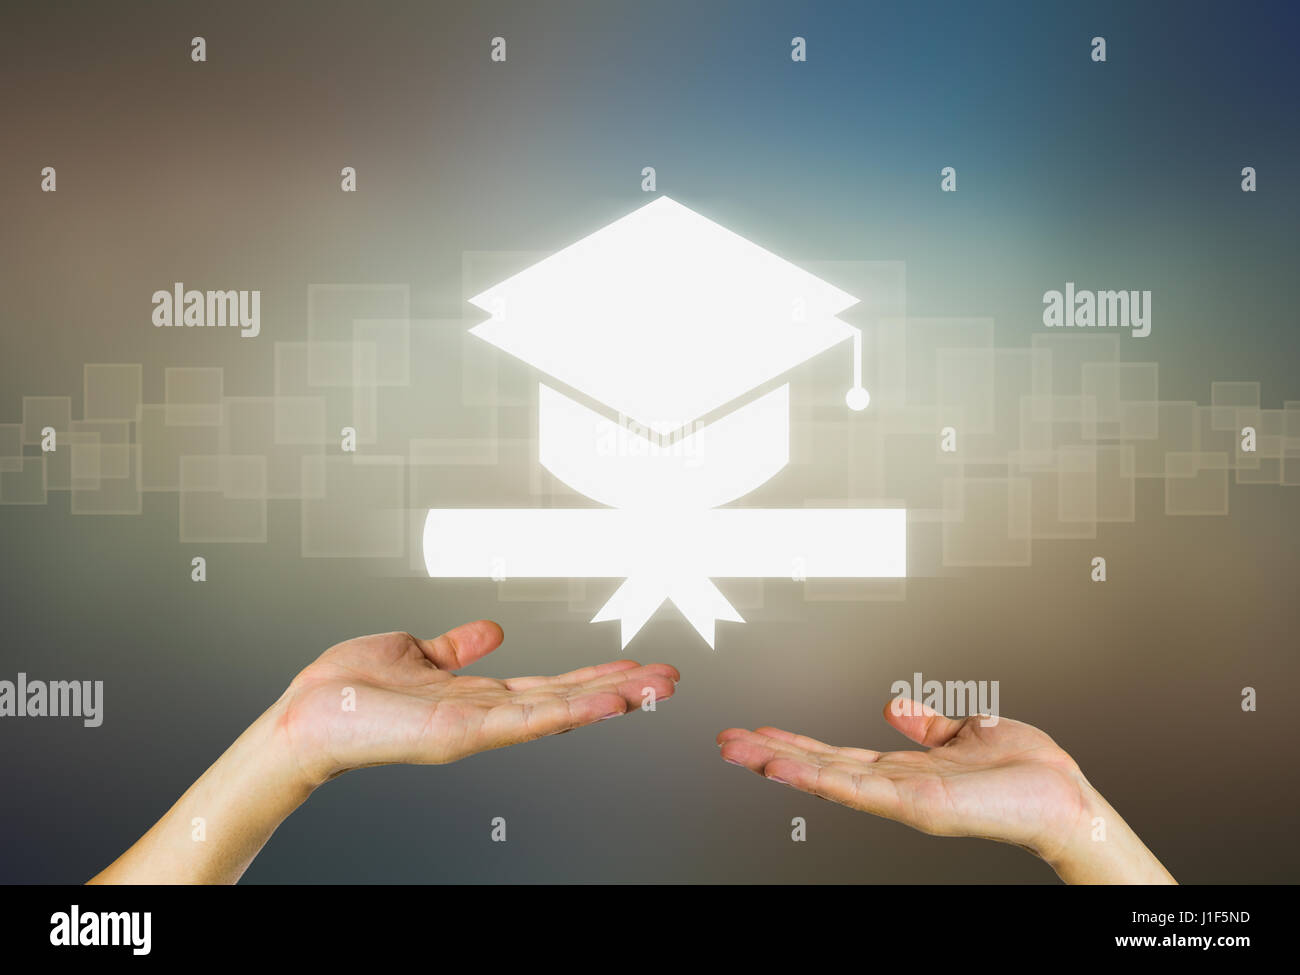 Phd Certificate Stock Photos & Phd Certificate Stock Images - Alamy